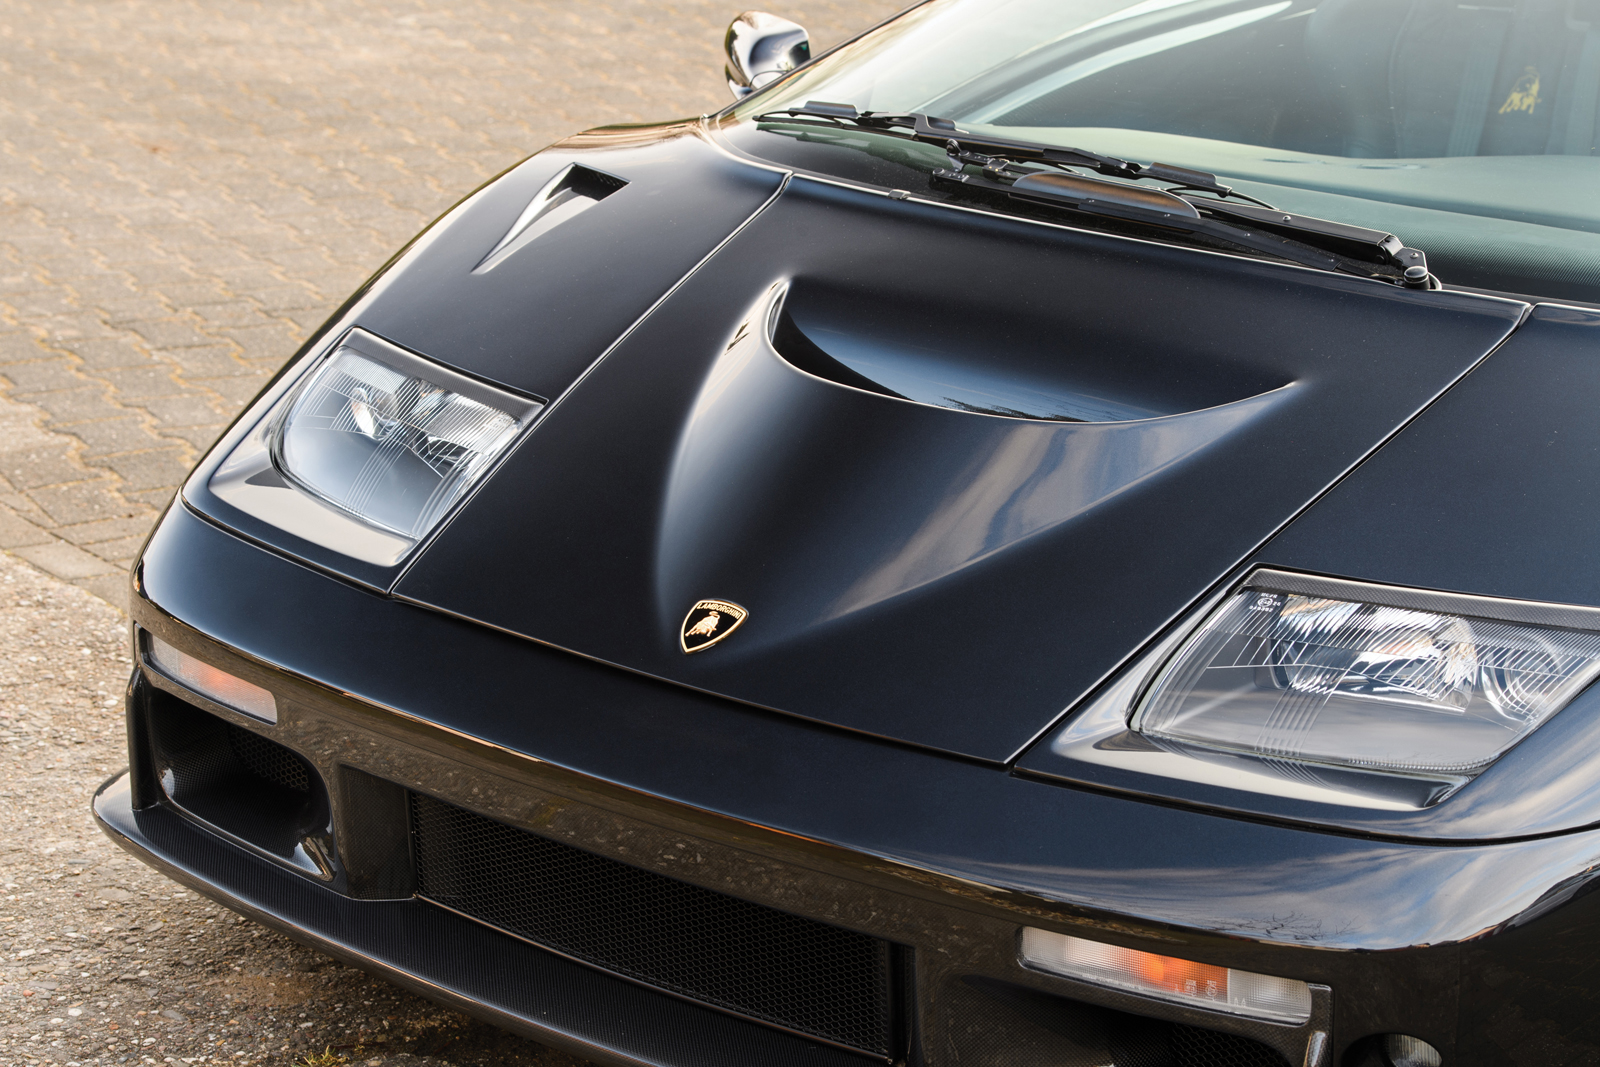 Lamborghini Diablo Gt Headed To Auction Supercar Report